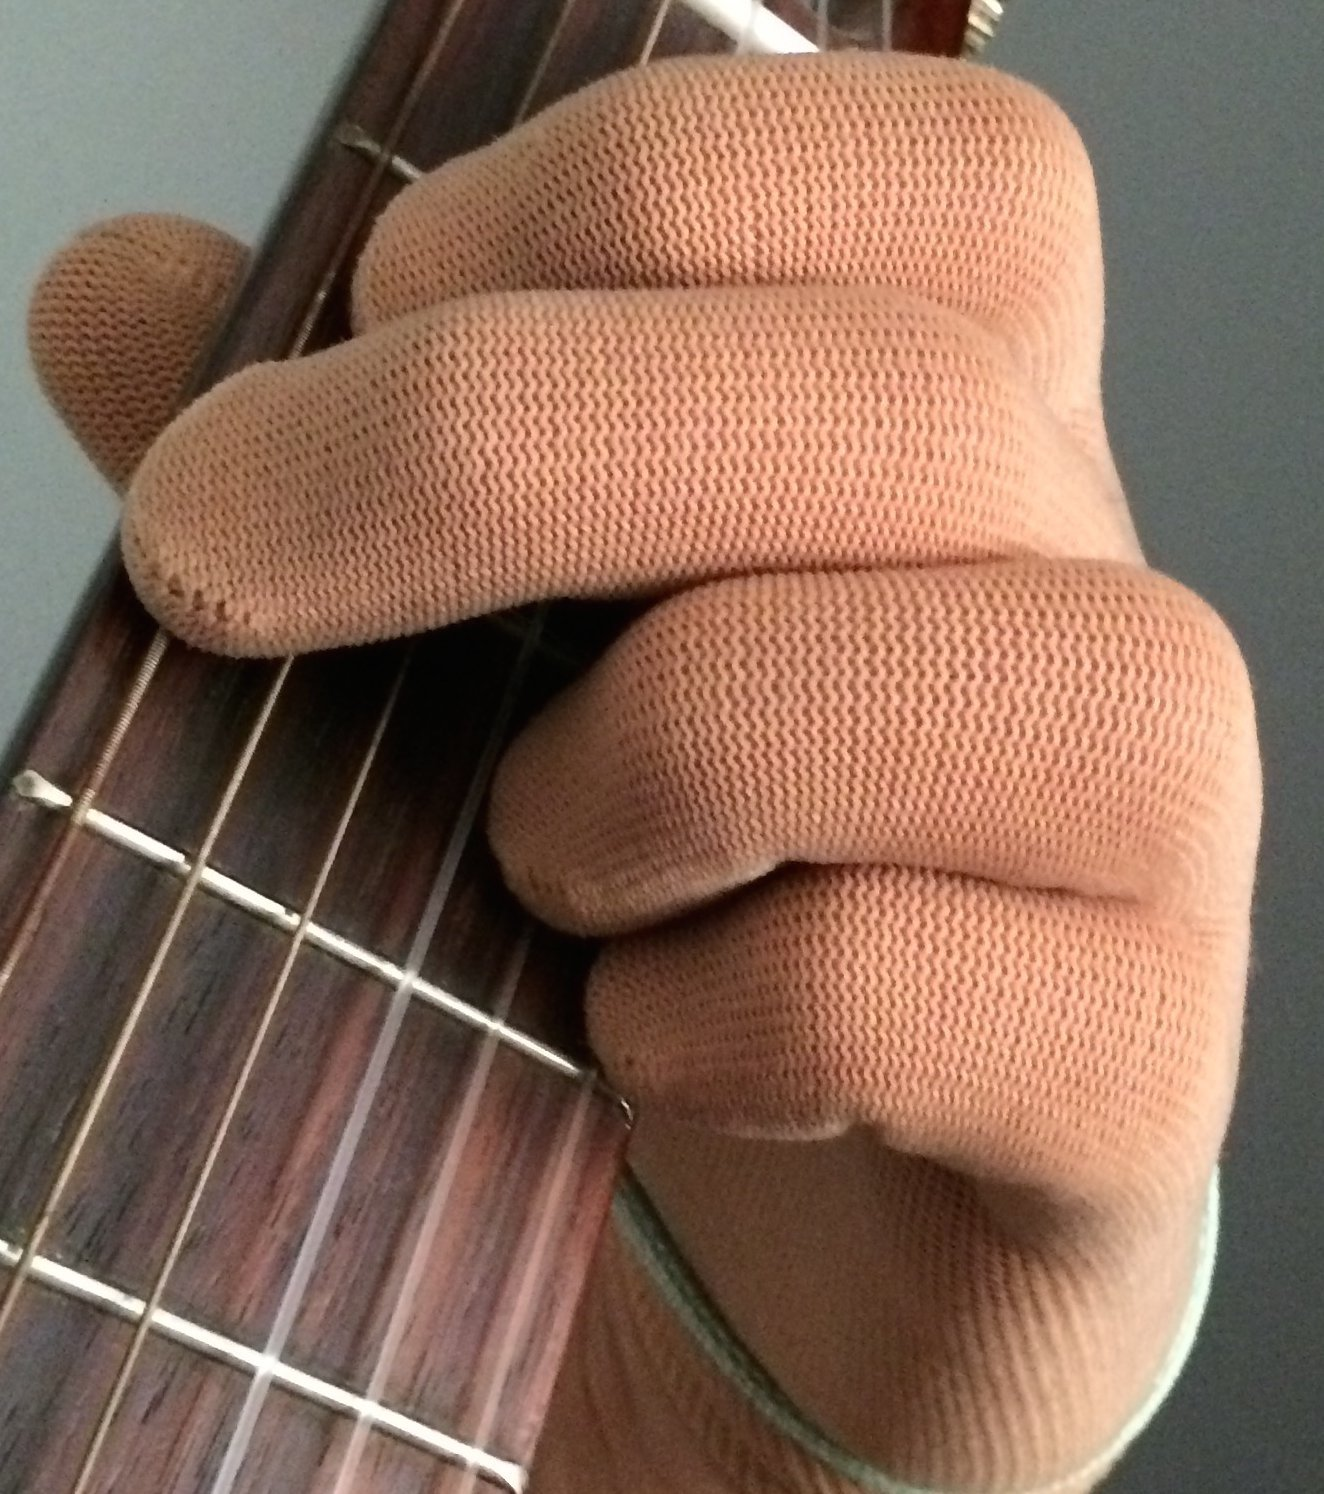 Fingerless gloves for guitarists - Amazon Com Guitar Glove Bass Glove Musician Practice Glove S 2 Pack Fits Either Hand Color Skin Tan Musical Instruments